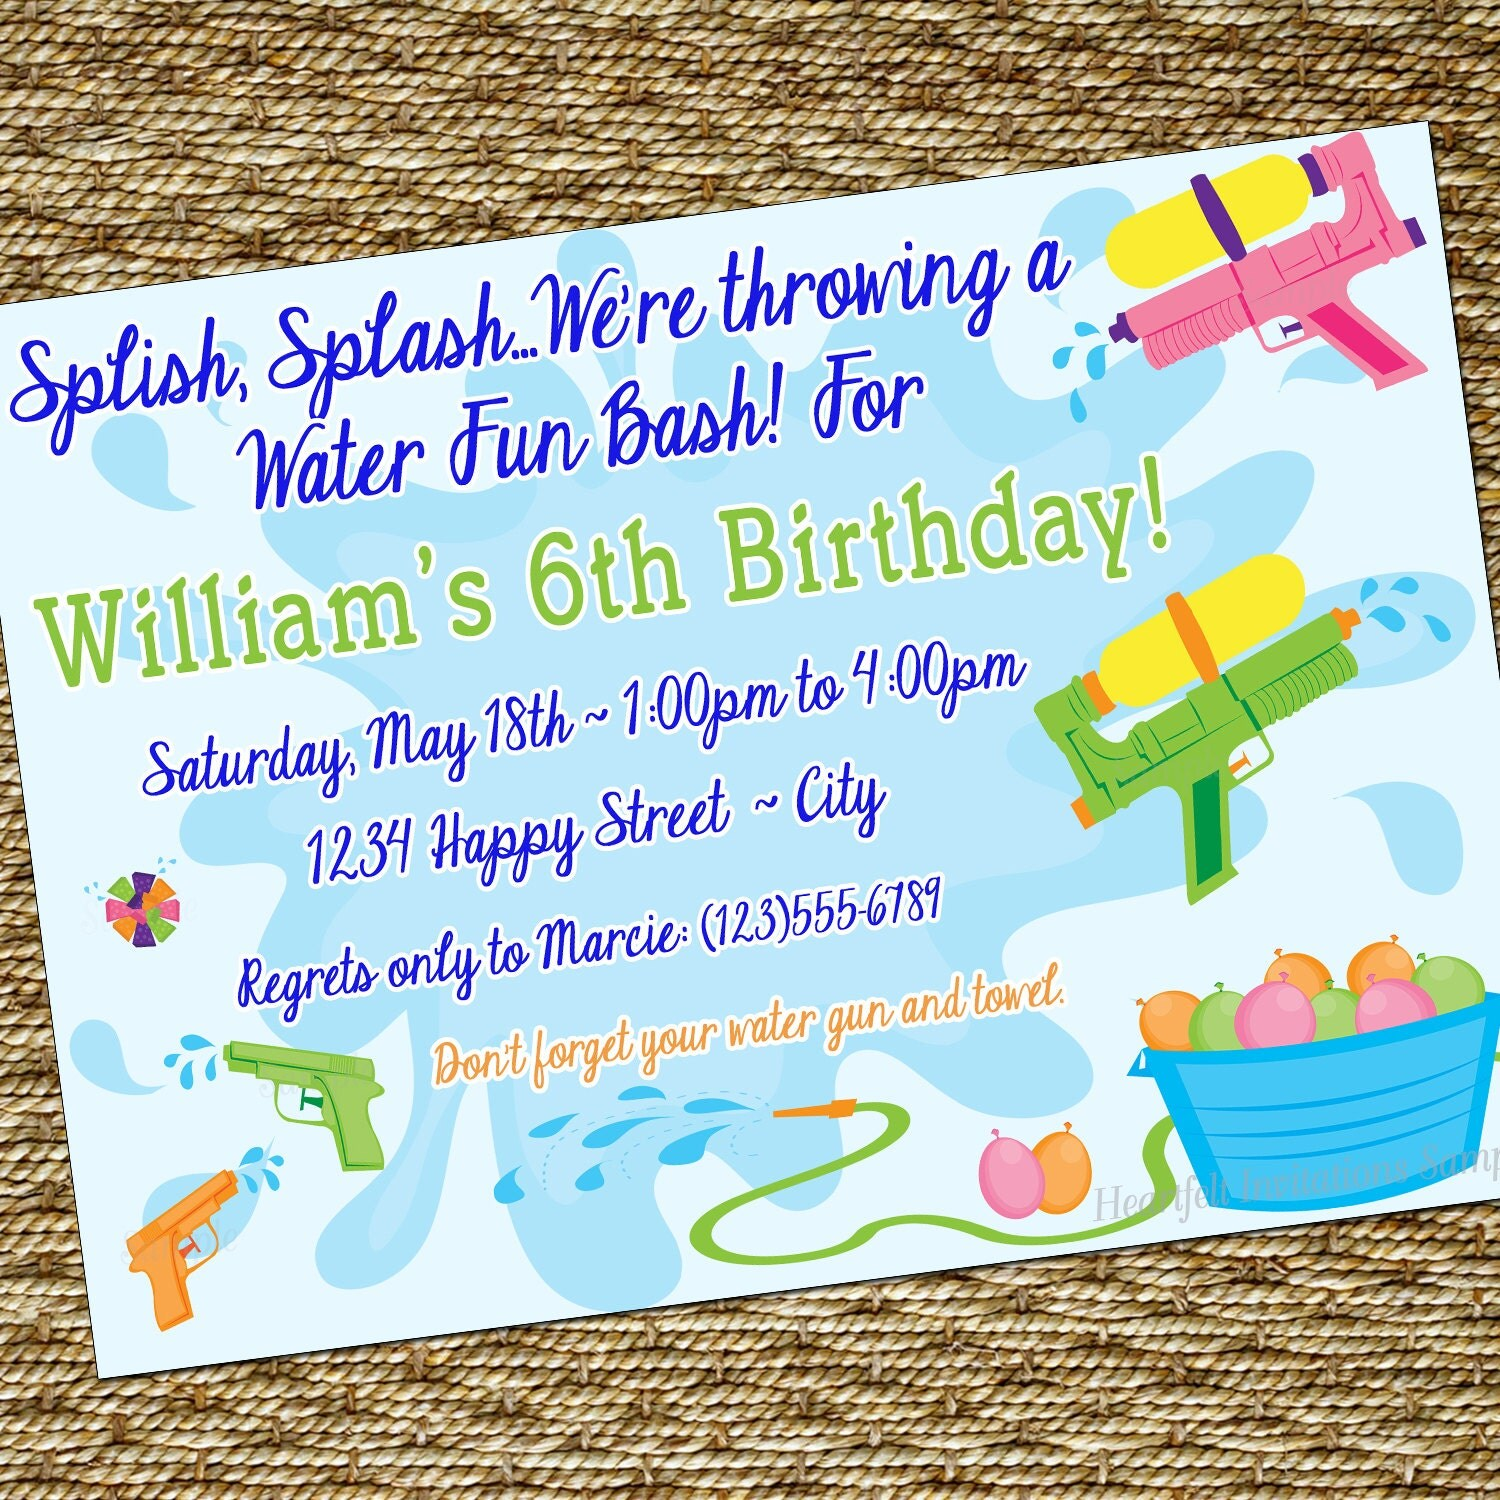 Wording Birthday Invitations was beautiful invitation ideas